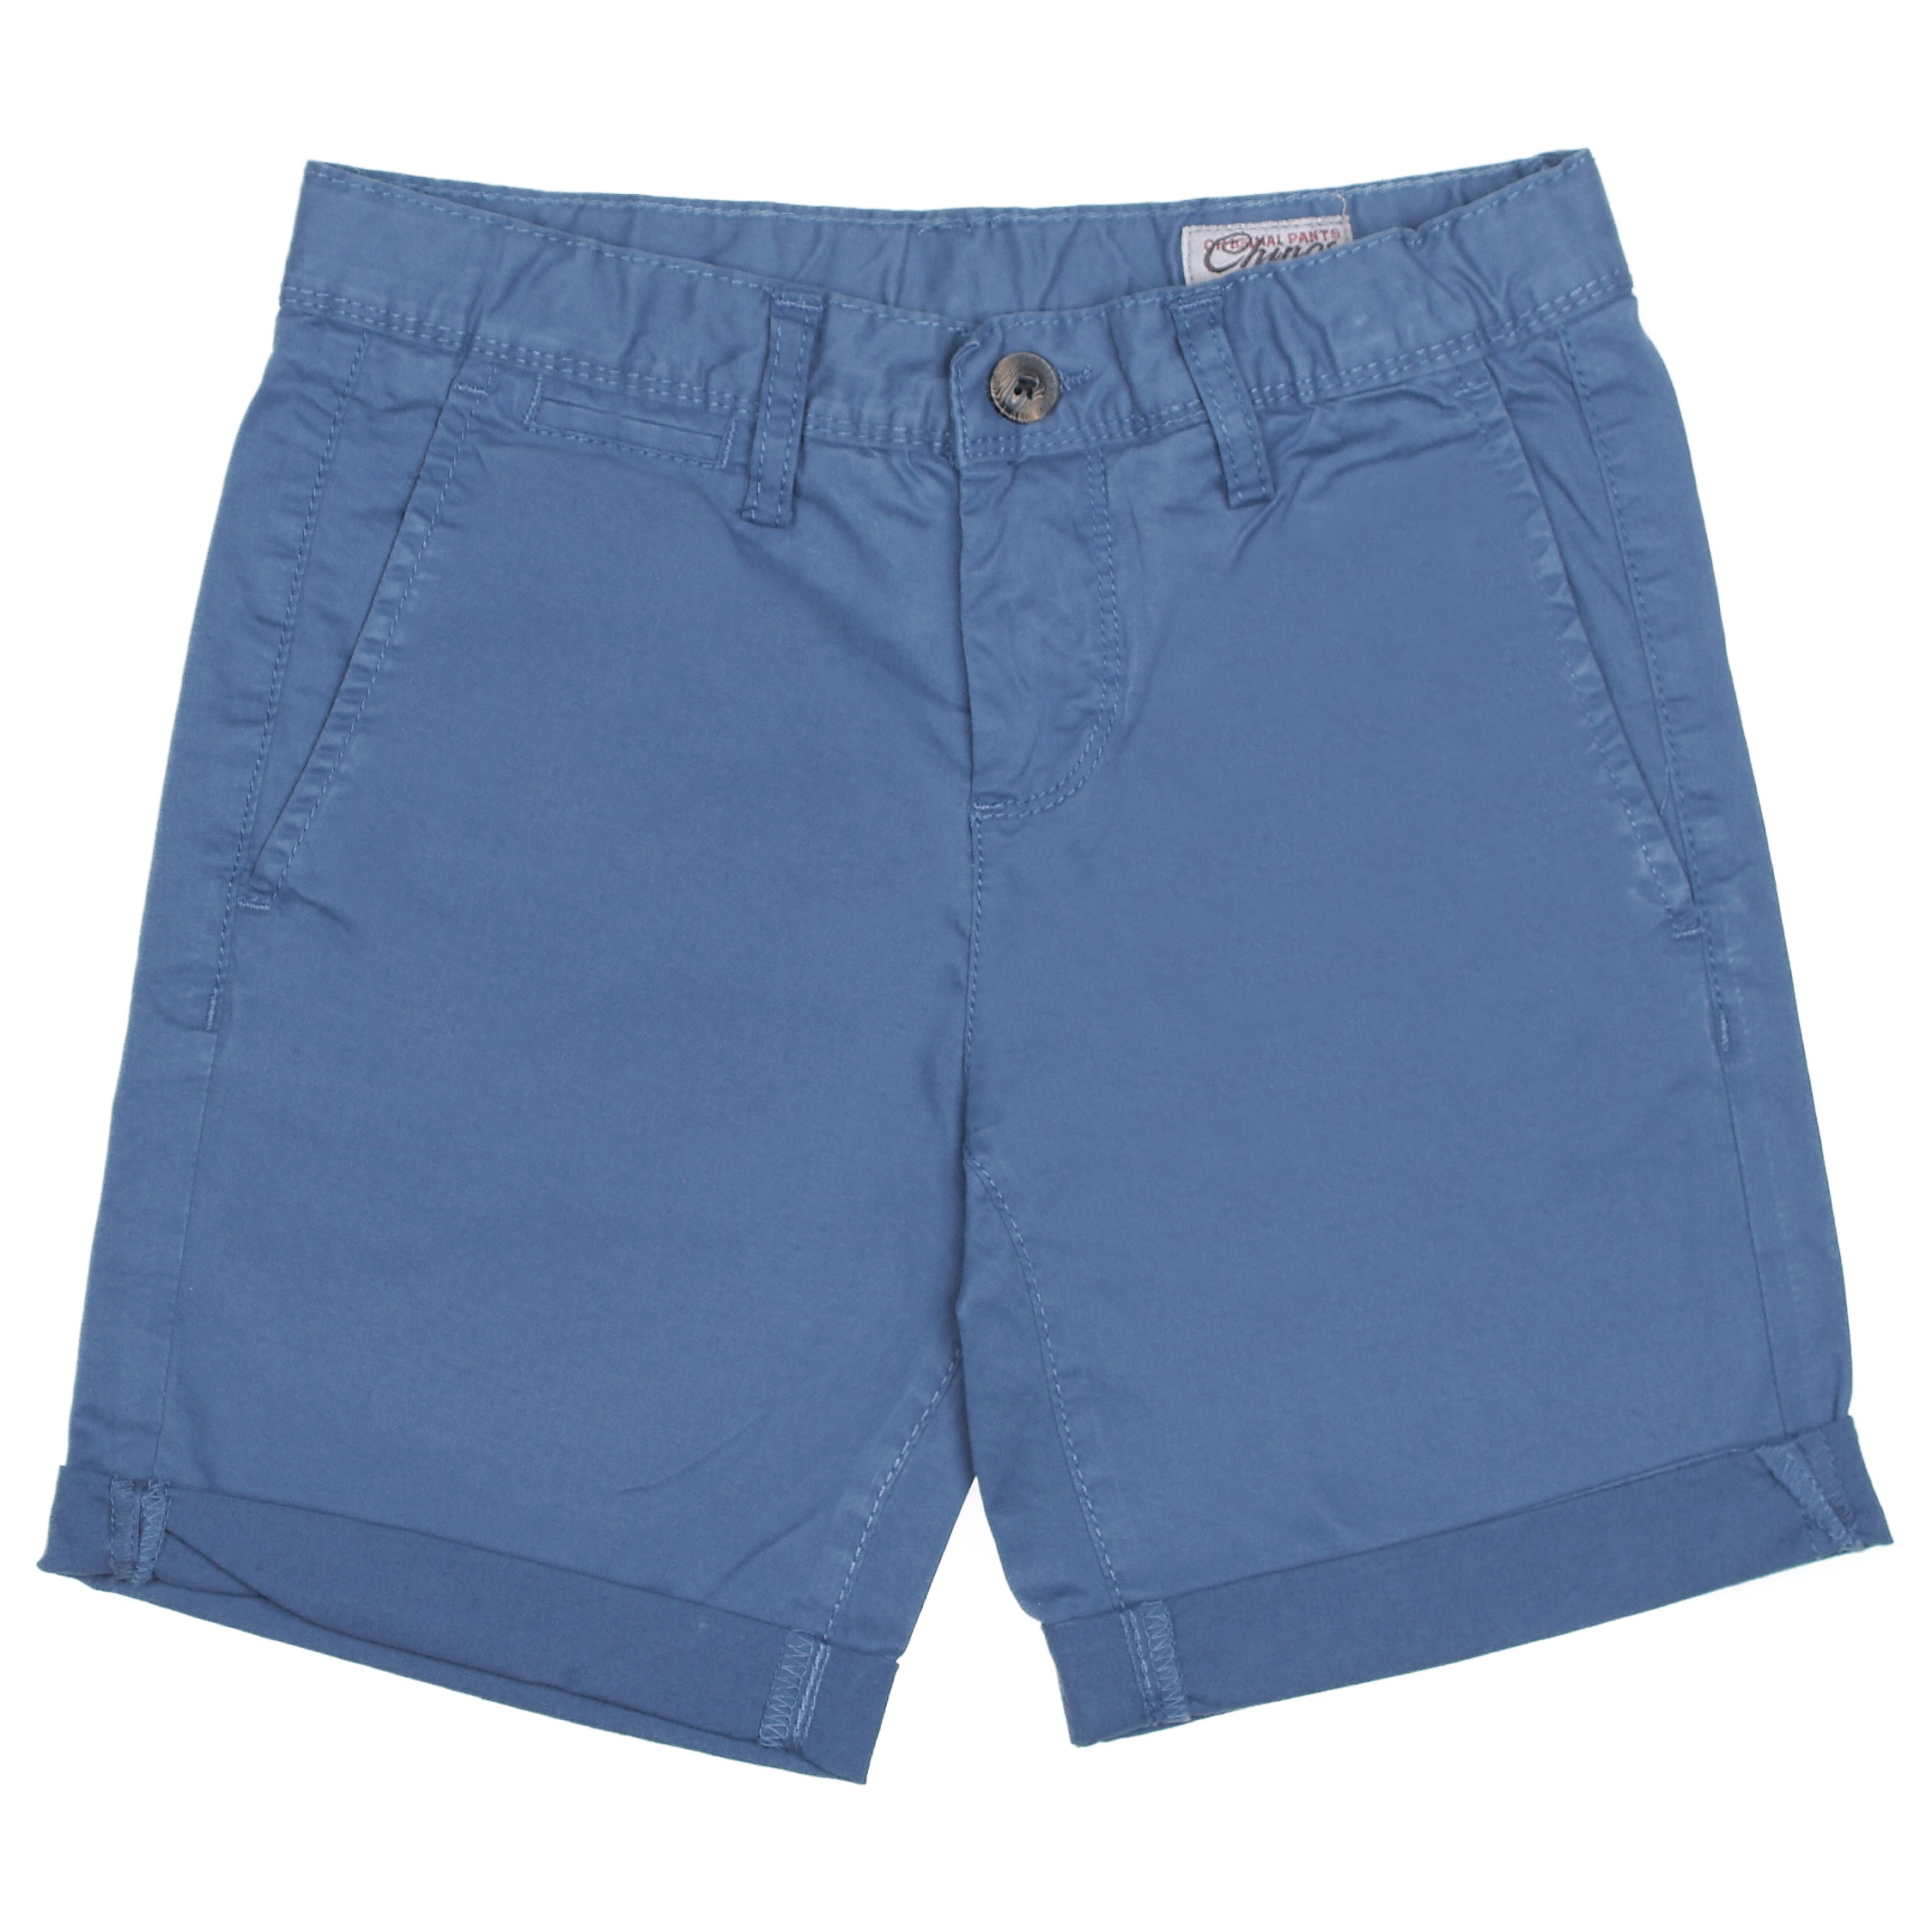 https://www.leadermode.com/189246/teddy-smith-short-chino-60404679d-346-deep-indigo.jpg